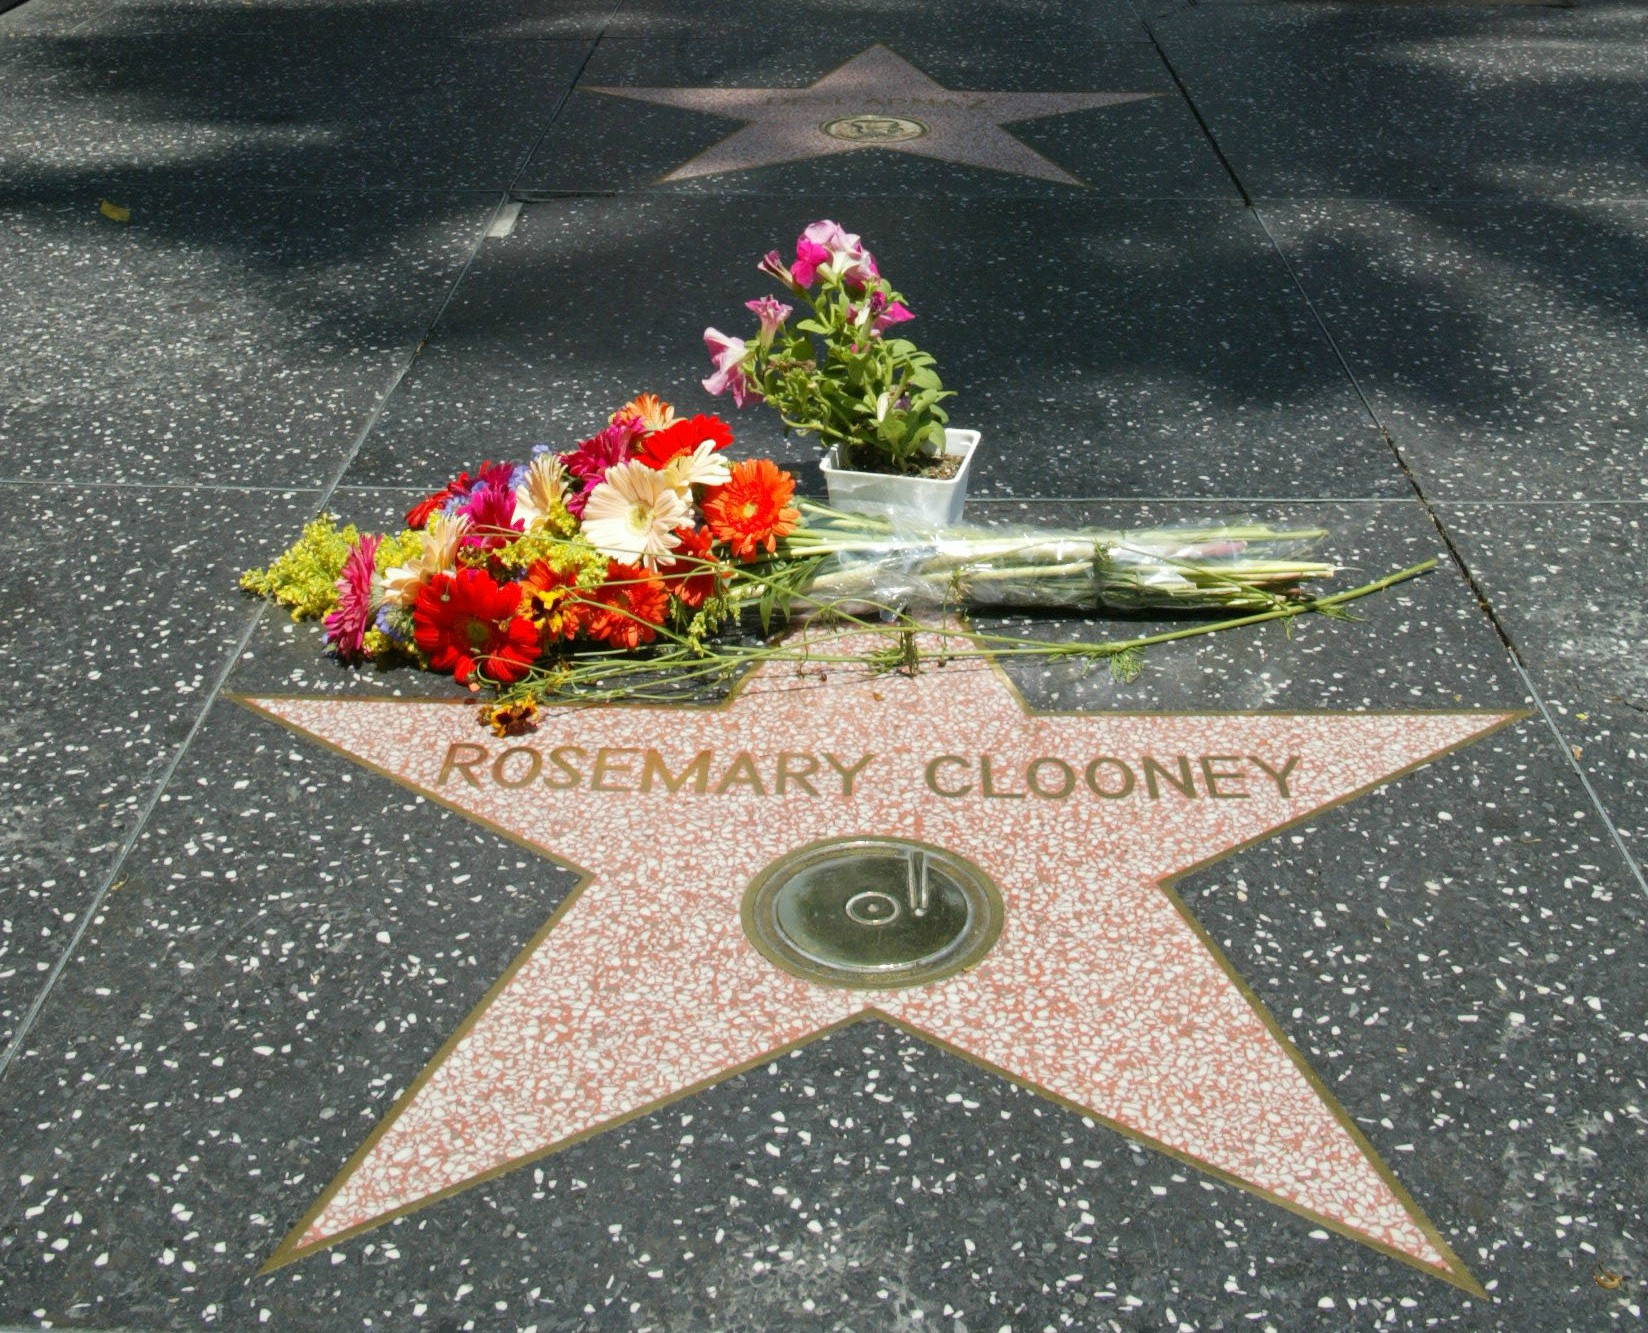 Rosemary Clooney Facts